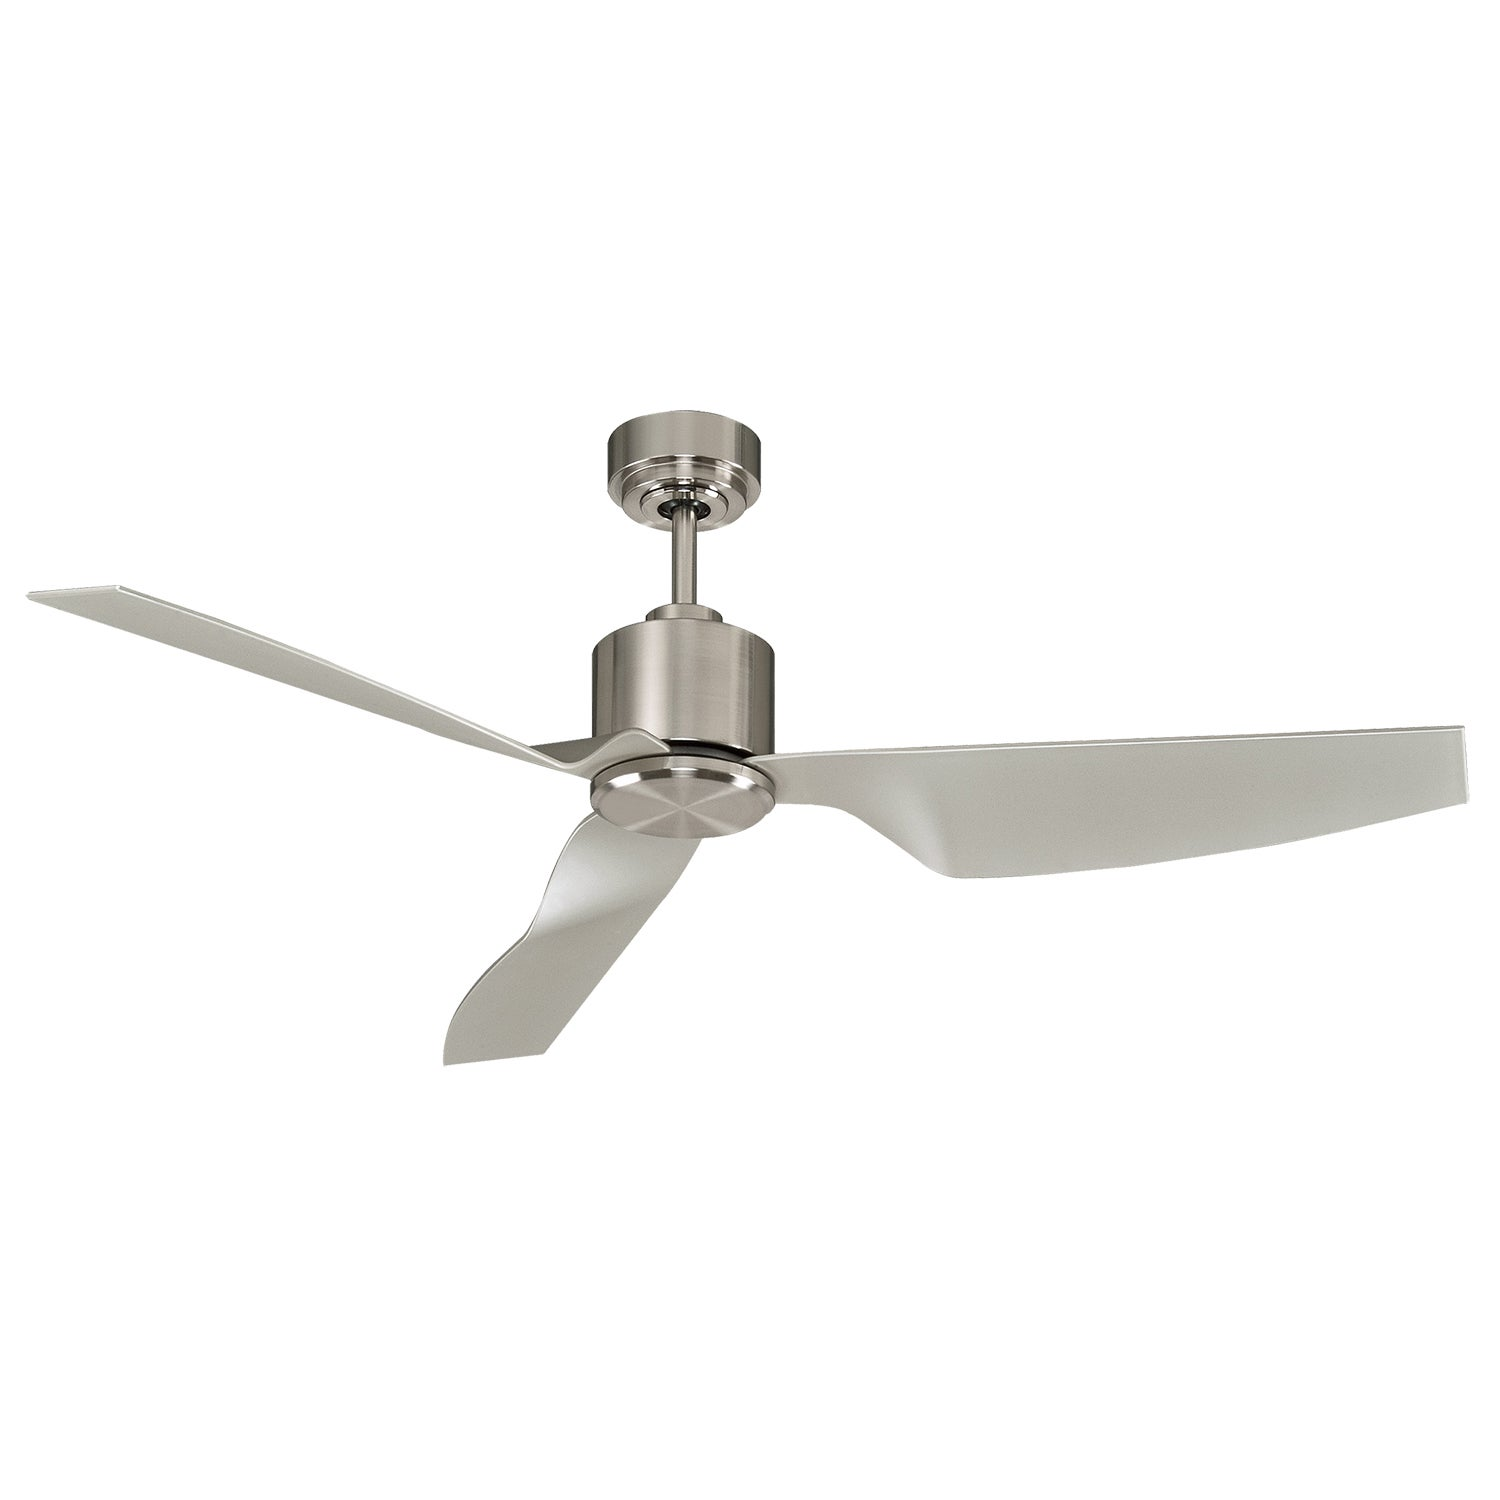 minka fan steel i wet ceiling aire rated stainless ceilings concept model